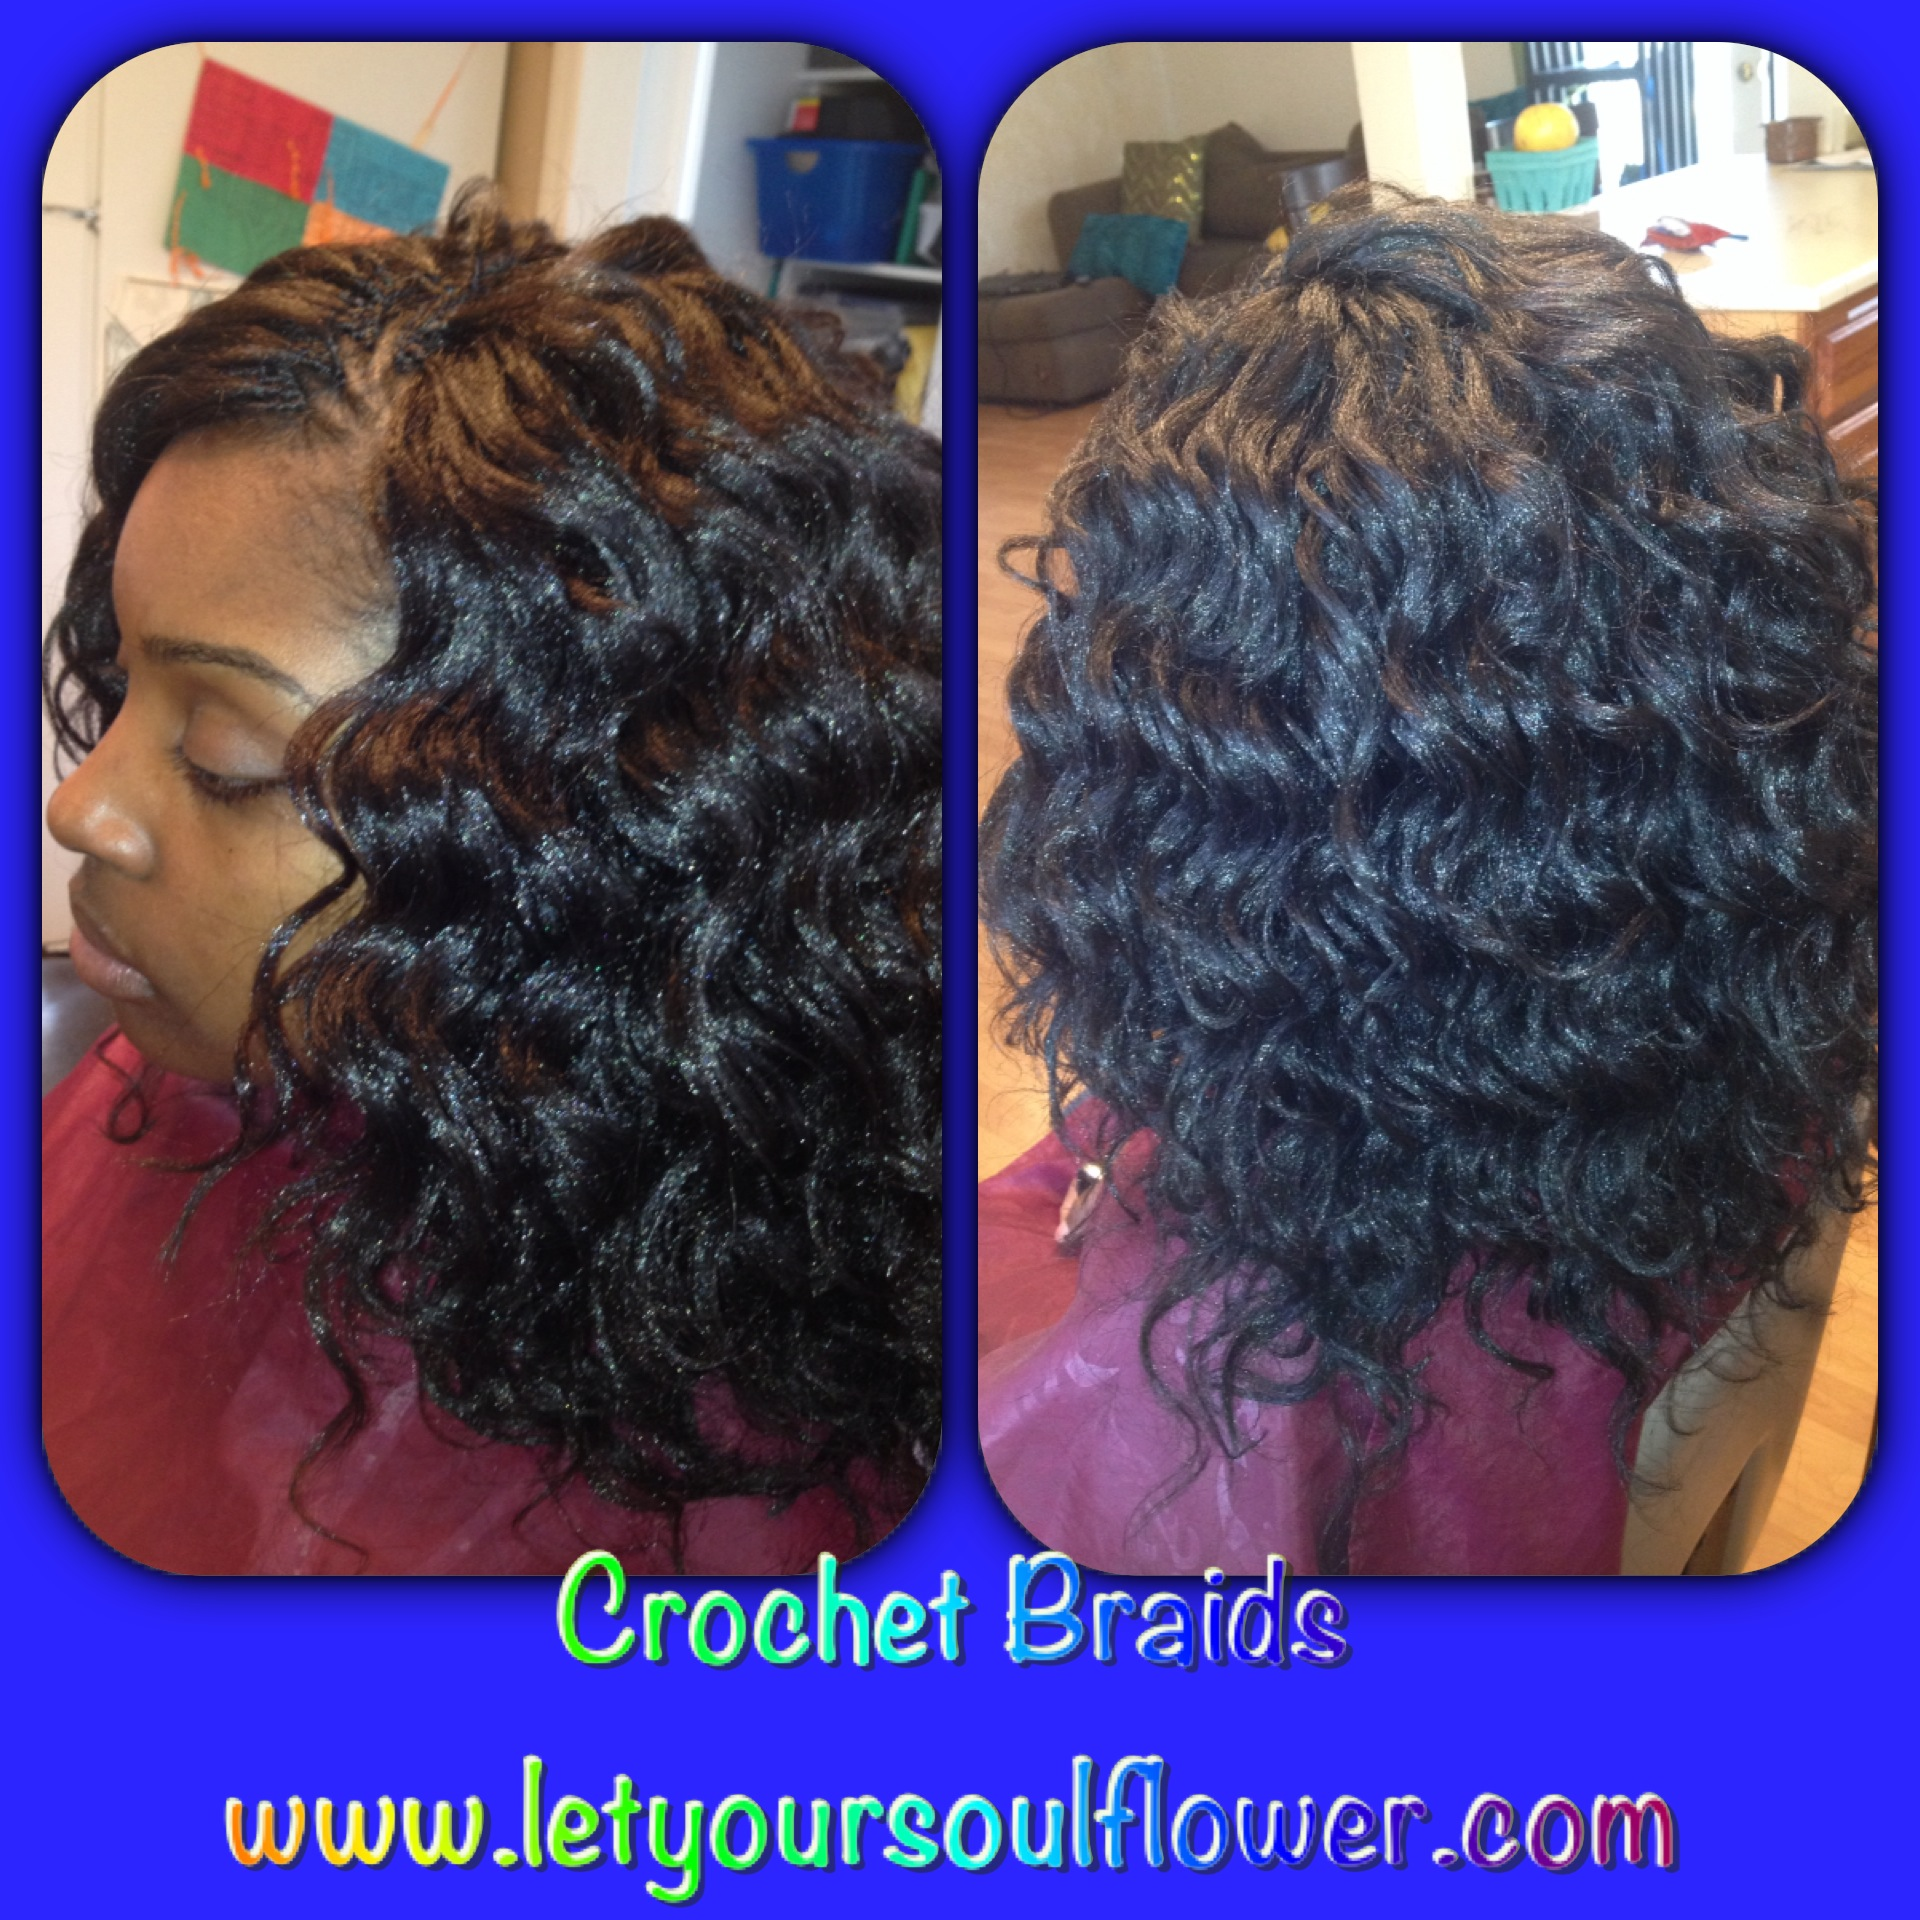 Crochet Braids Greensboro Nc : Crochet Braids